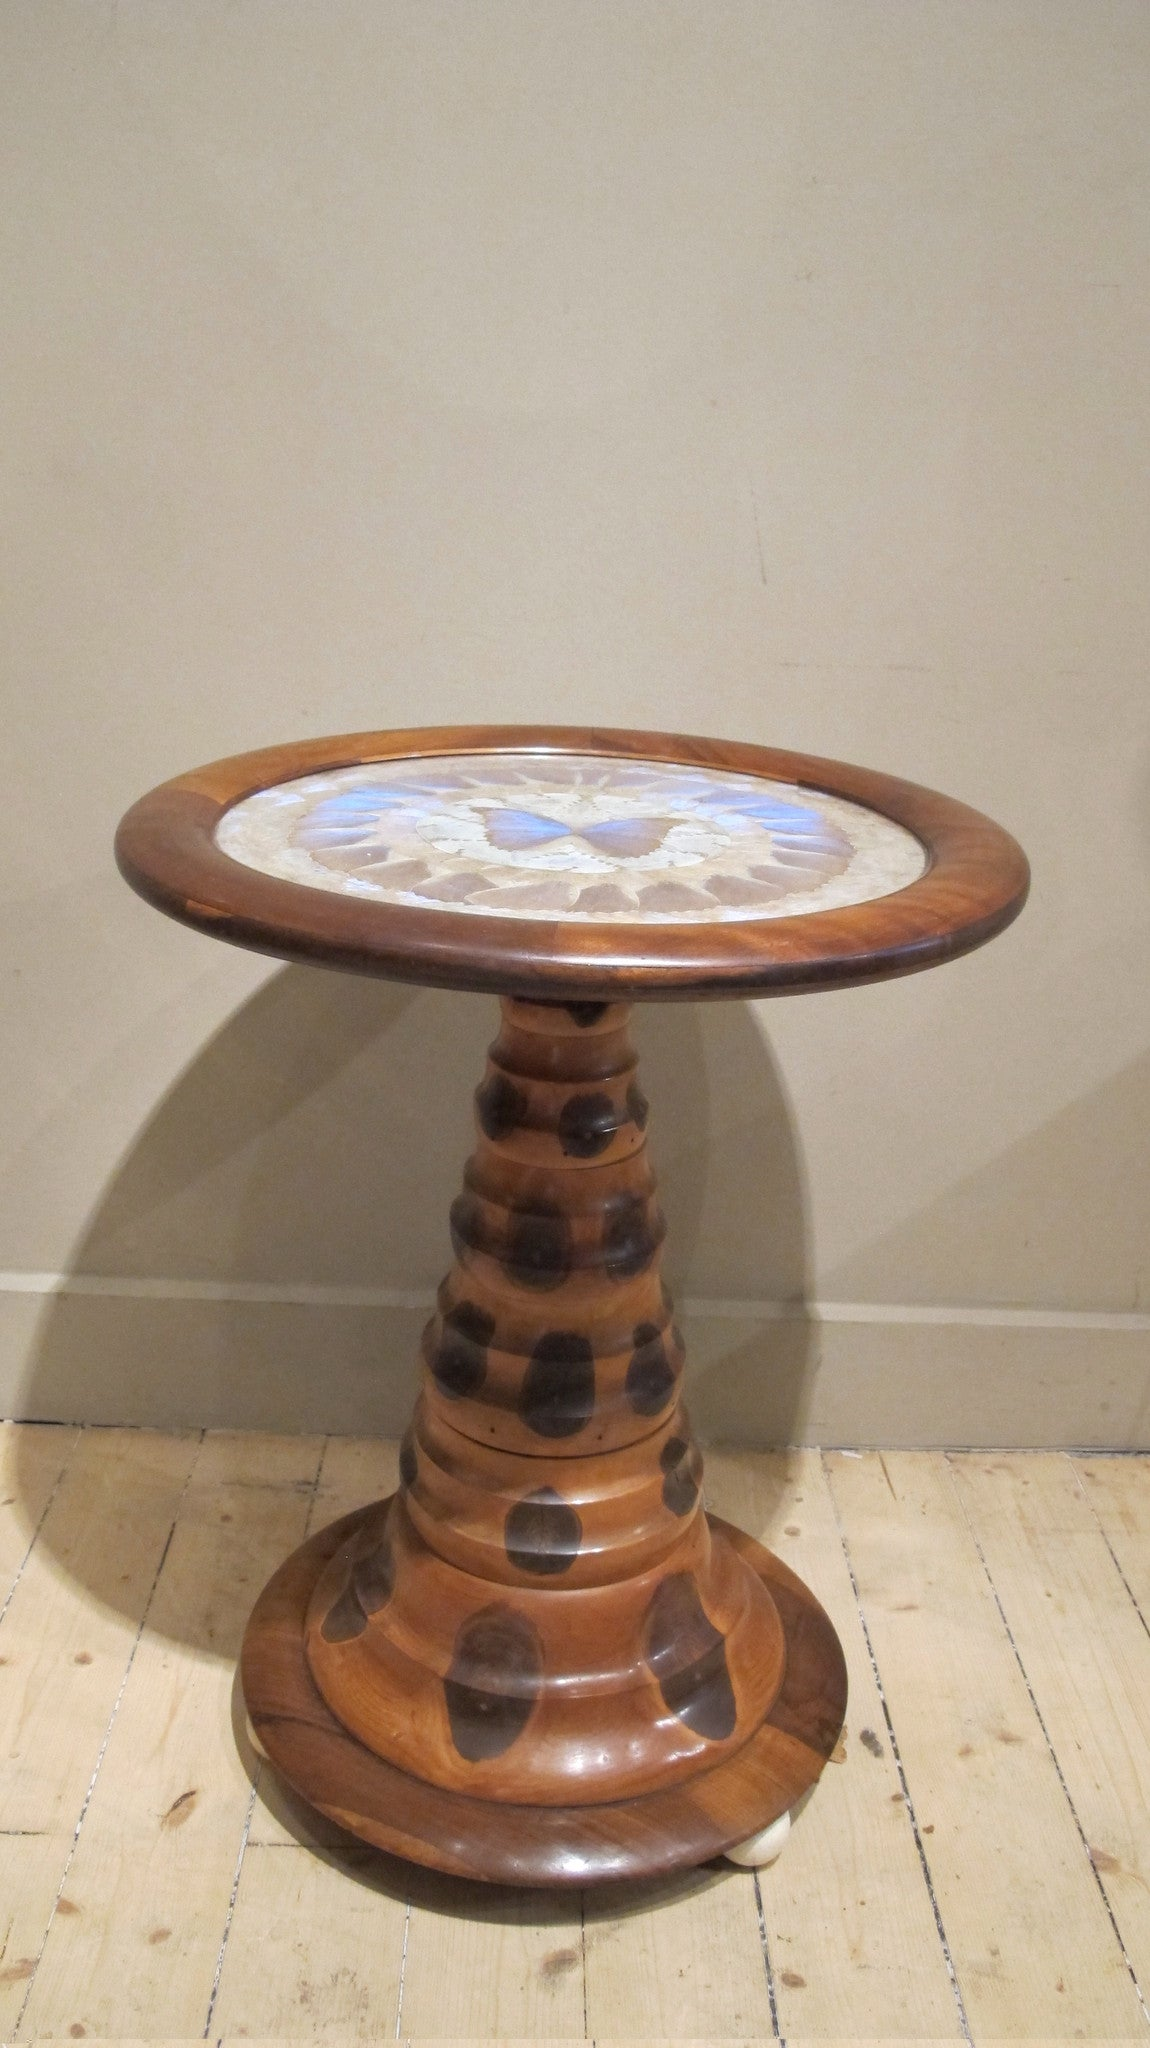 X Mid 20th-century Brazilian monkey puzzle wood table with circular top inset with butterflies